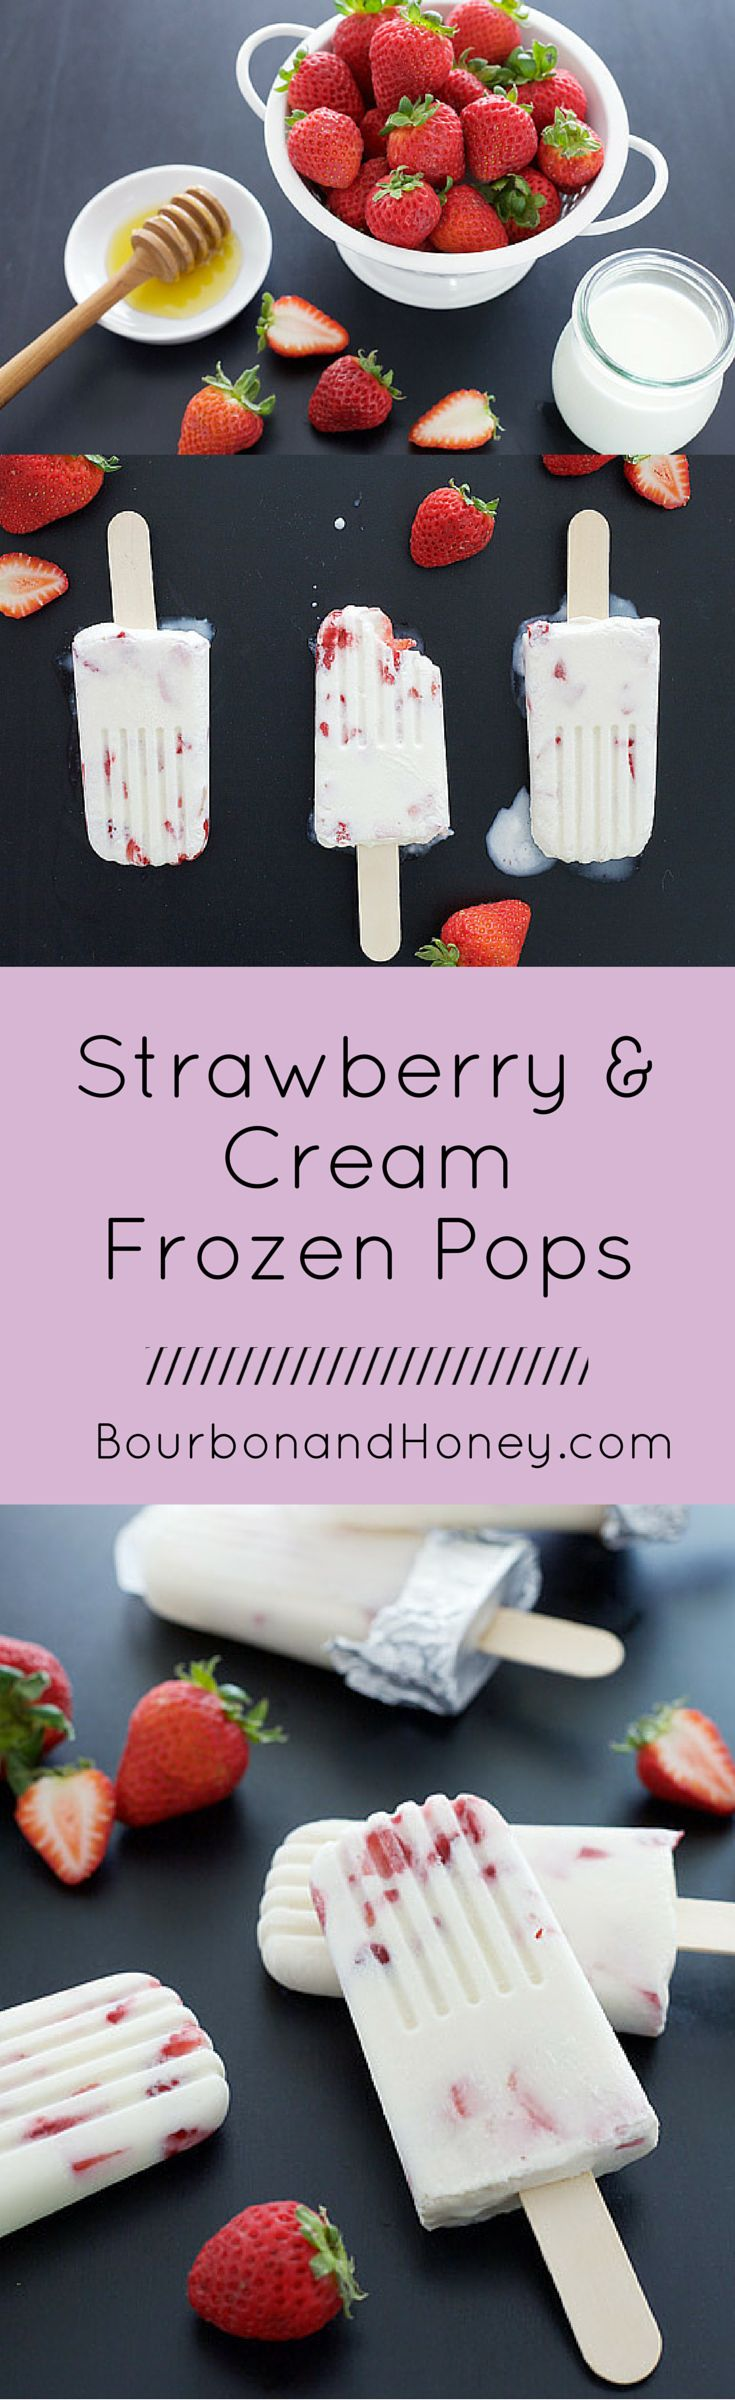 Strawberry and Cream Frozen Pops   BourbonandHoney.com -- A simply delicious recipe for Strawberry and Cream frozen pops.     - Click through to read the full post or Repin to find later!